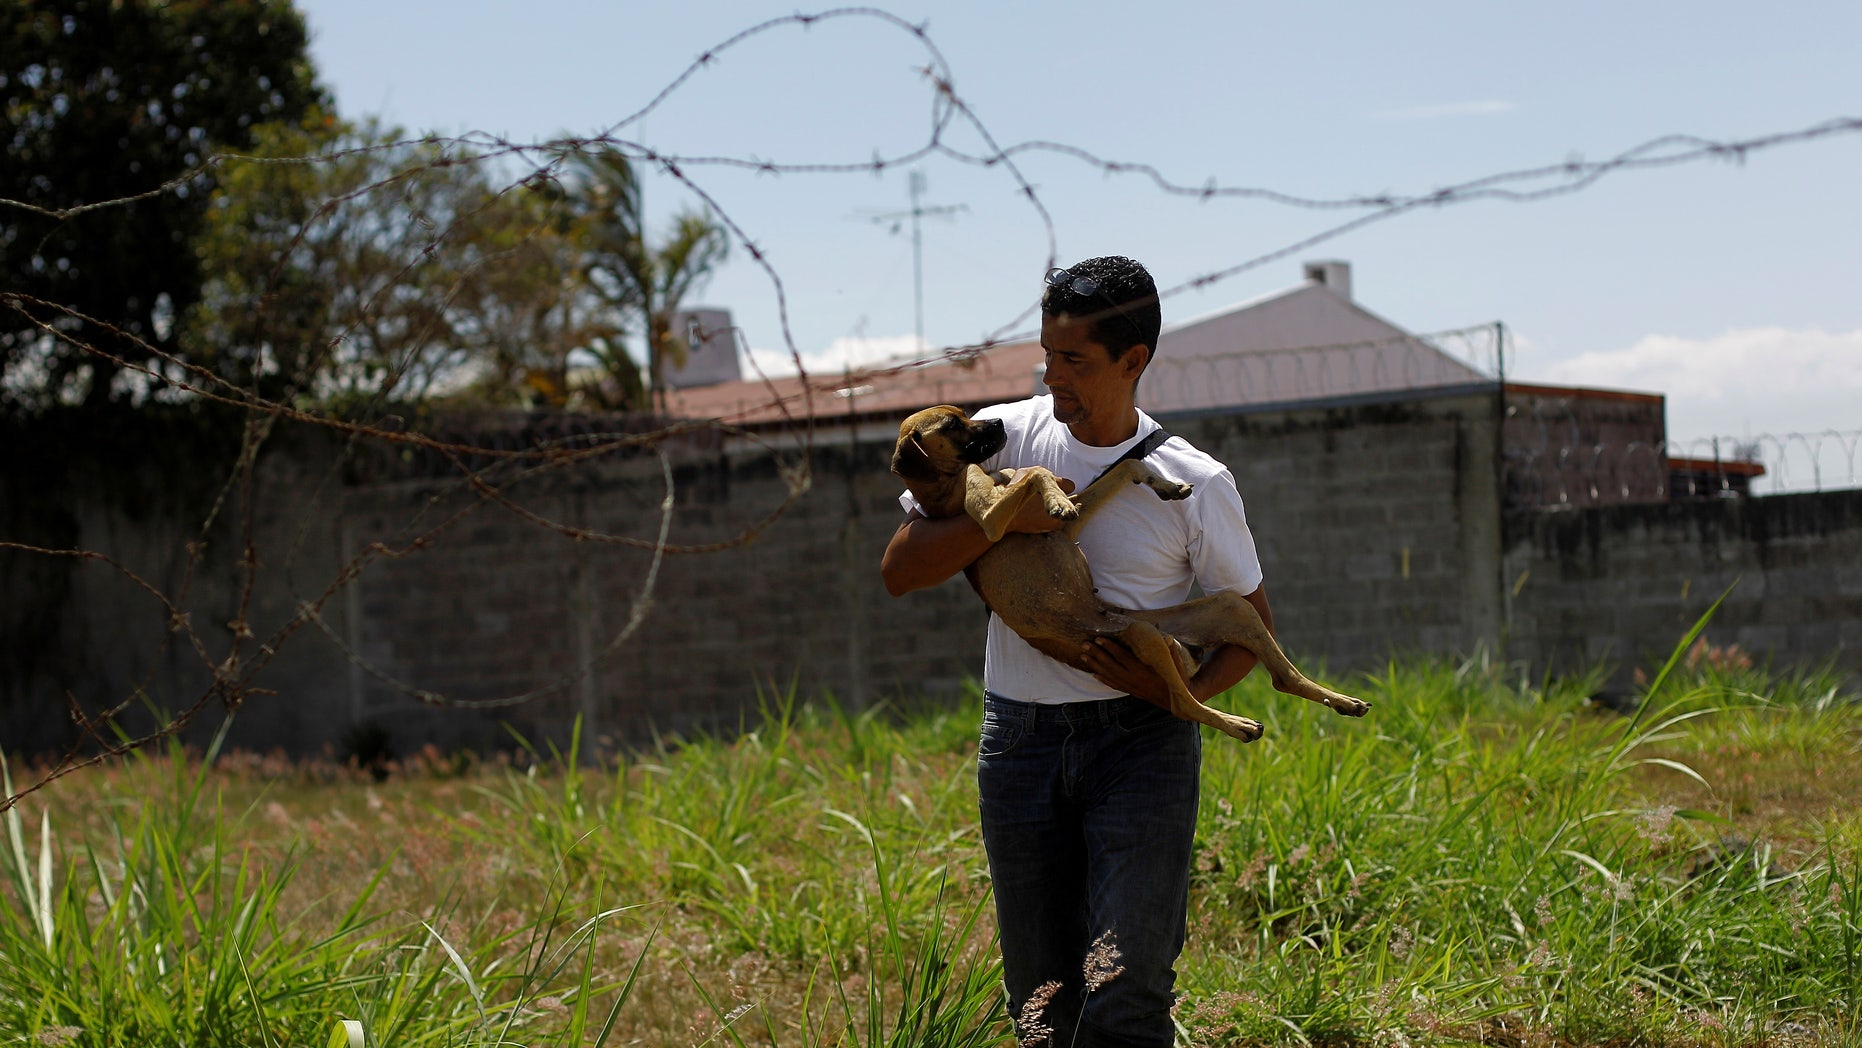 Alvaro Saumet rescues a stray dog in San Jose, Costa Rica, April 22, 2016.